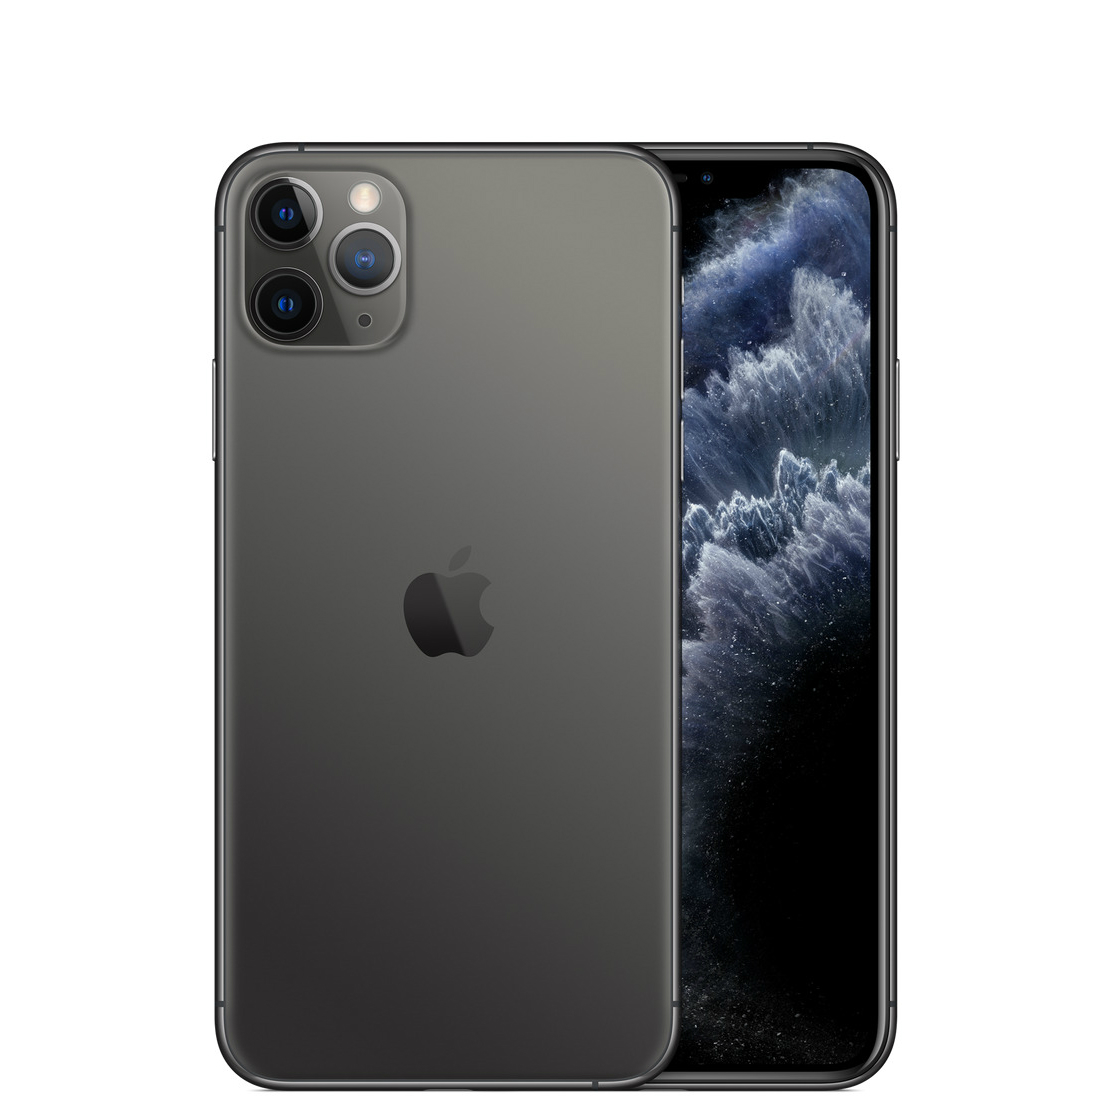 Image of Apple iPhone 11 Pro Max 256GB A2220 Dual Sim - Space Gray